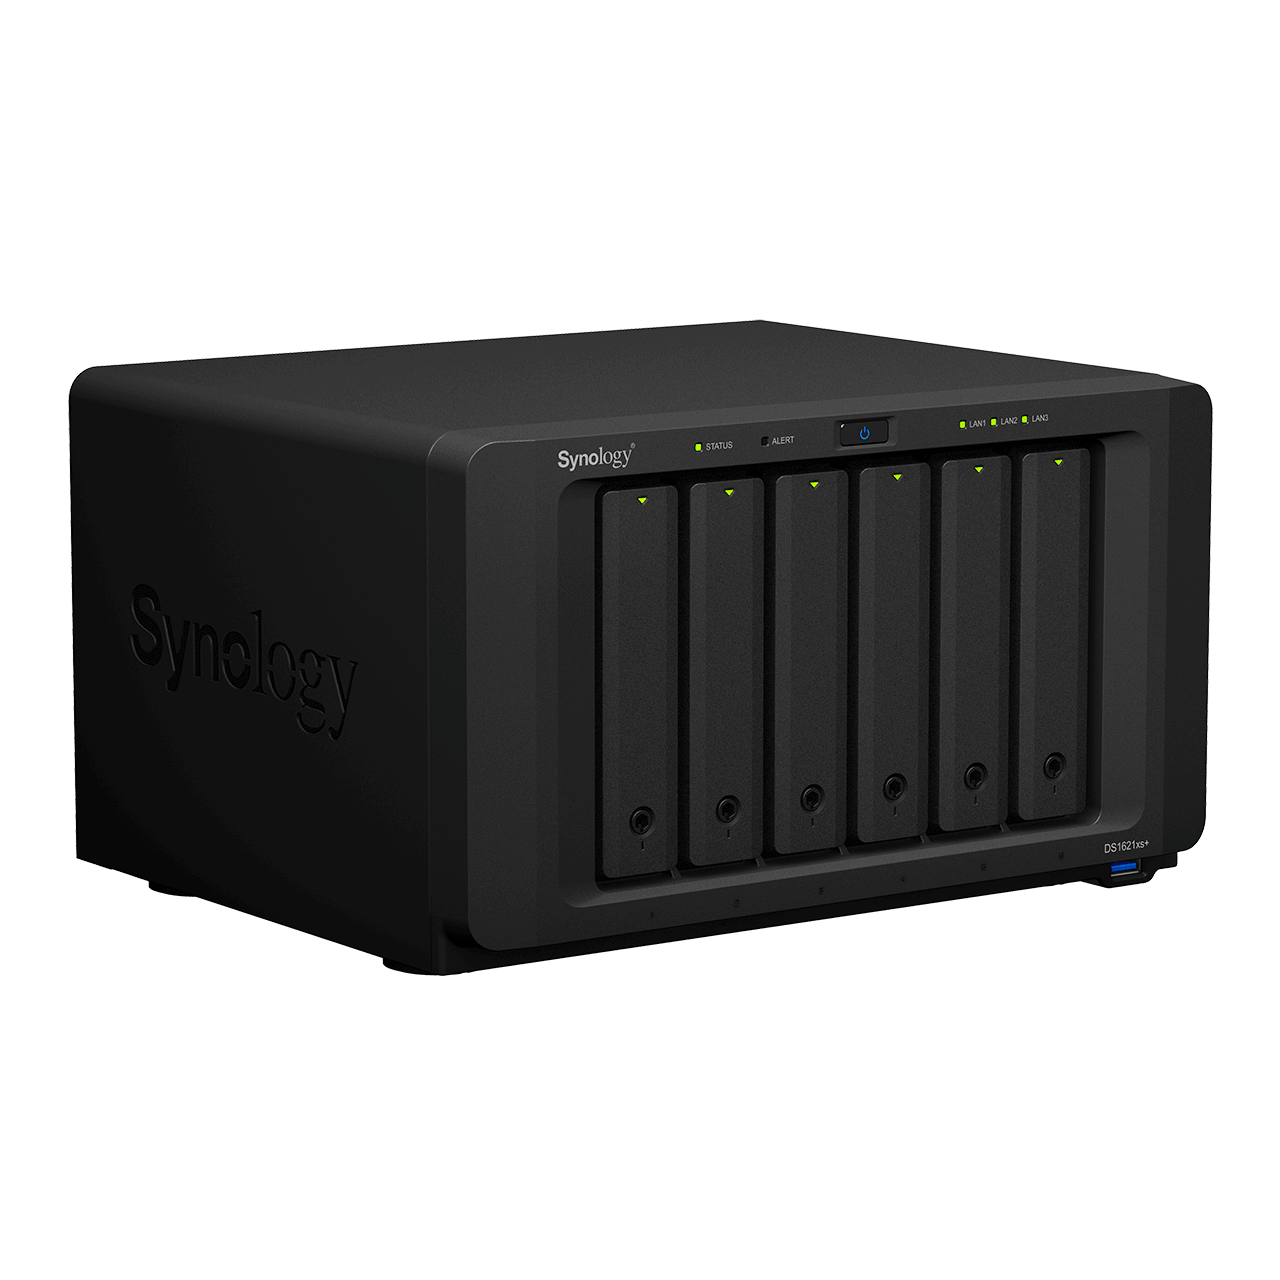 Synology DS1621xs NAS 5